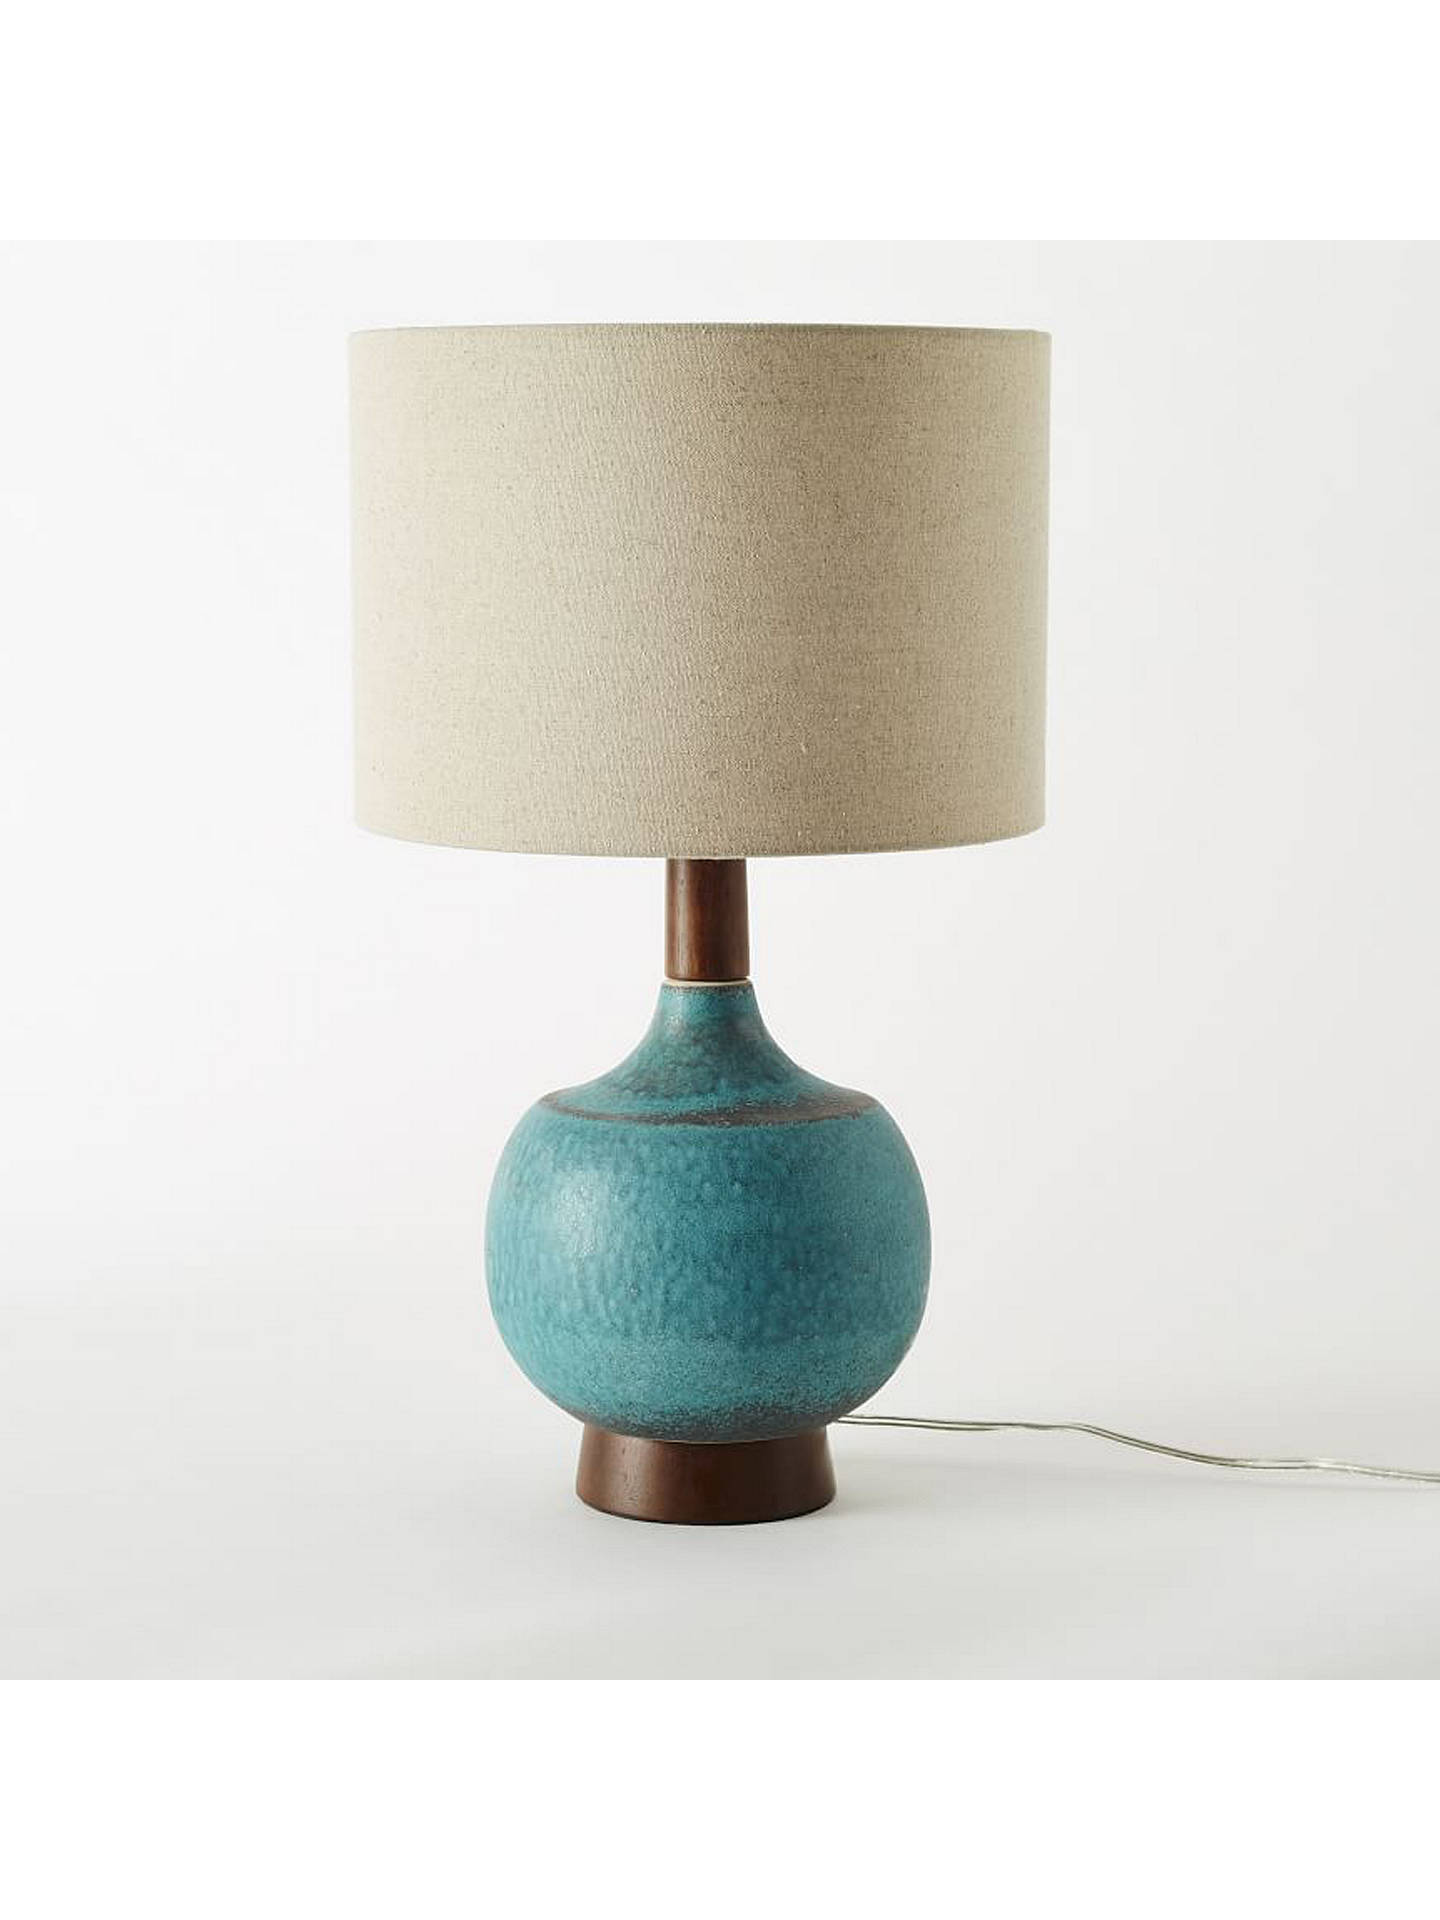 Buywest elm modernist table lamp turquoise online at johnlewis com